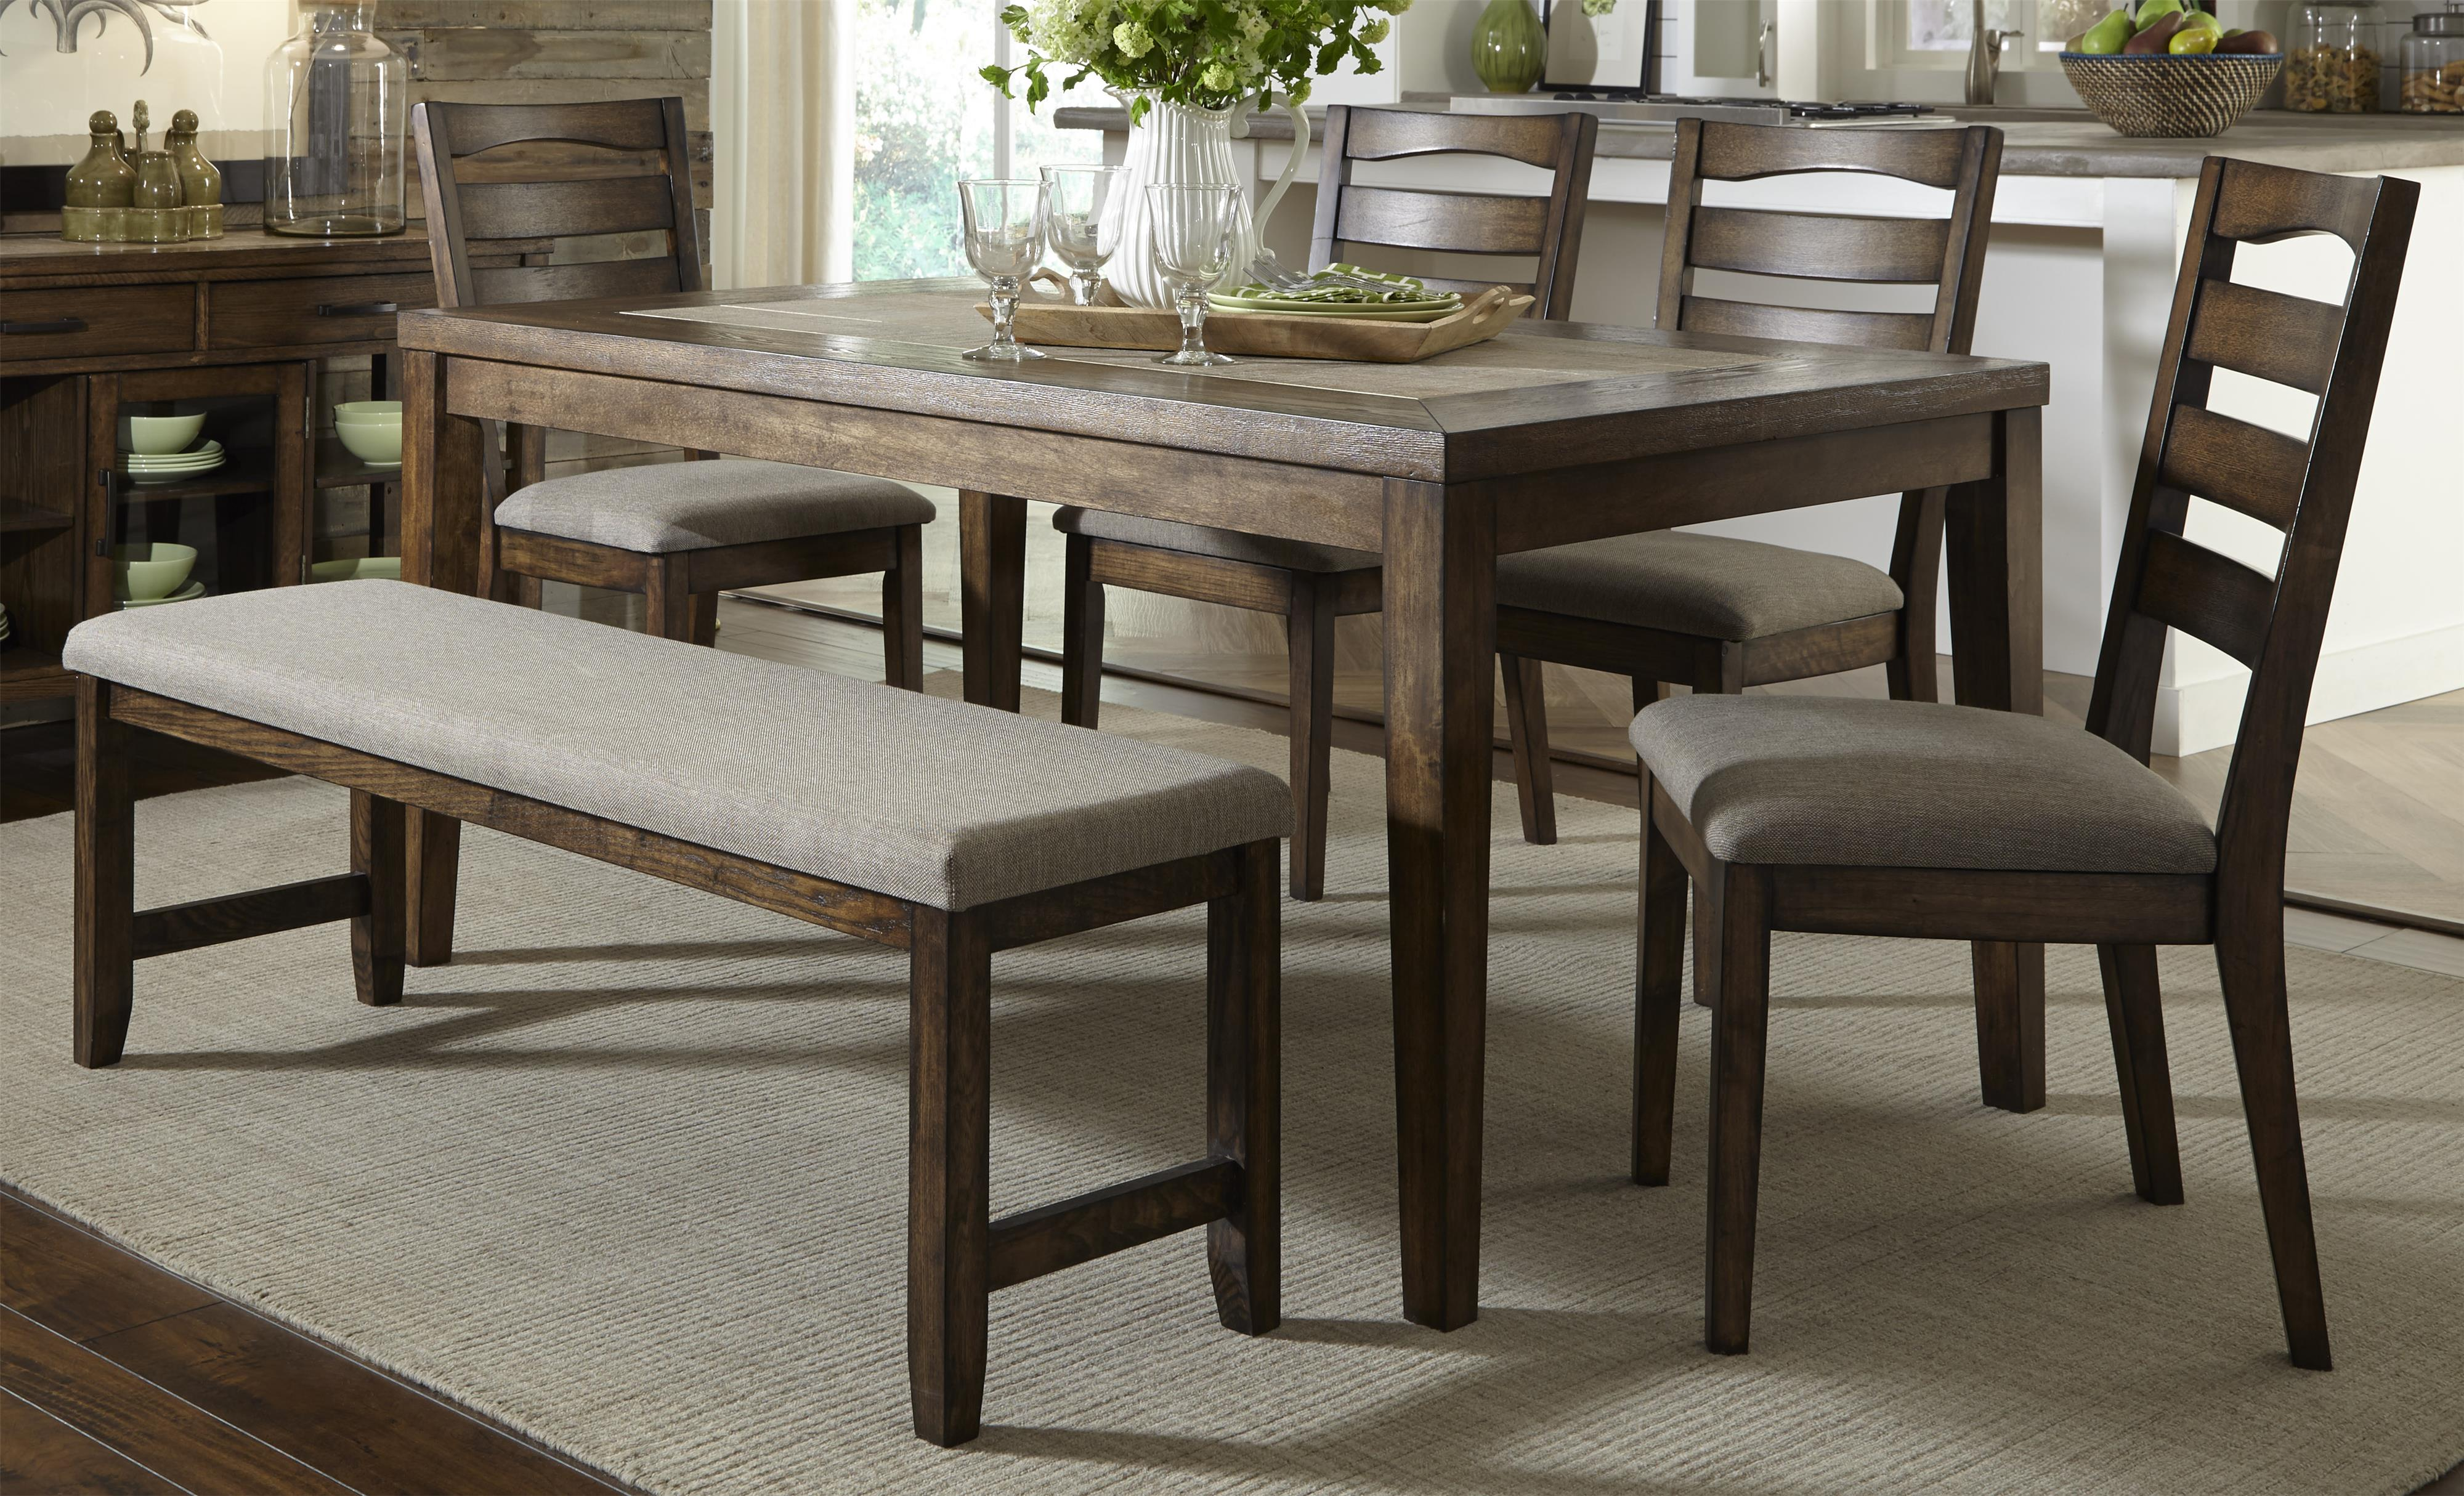 Progressive Furniture Forest Brook 6 Piece Dining Table and Chair Set w/ Bench - Item Number: P378D-10+69+4x61